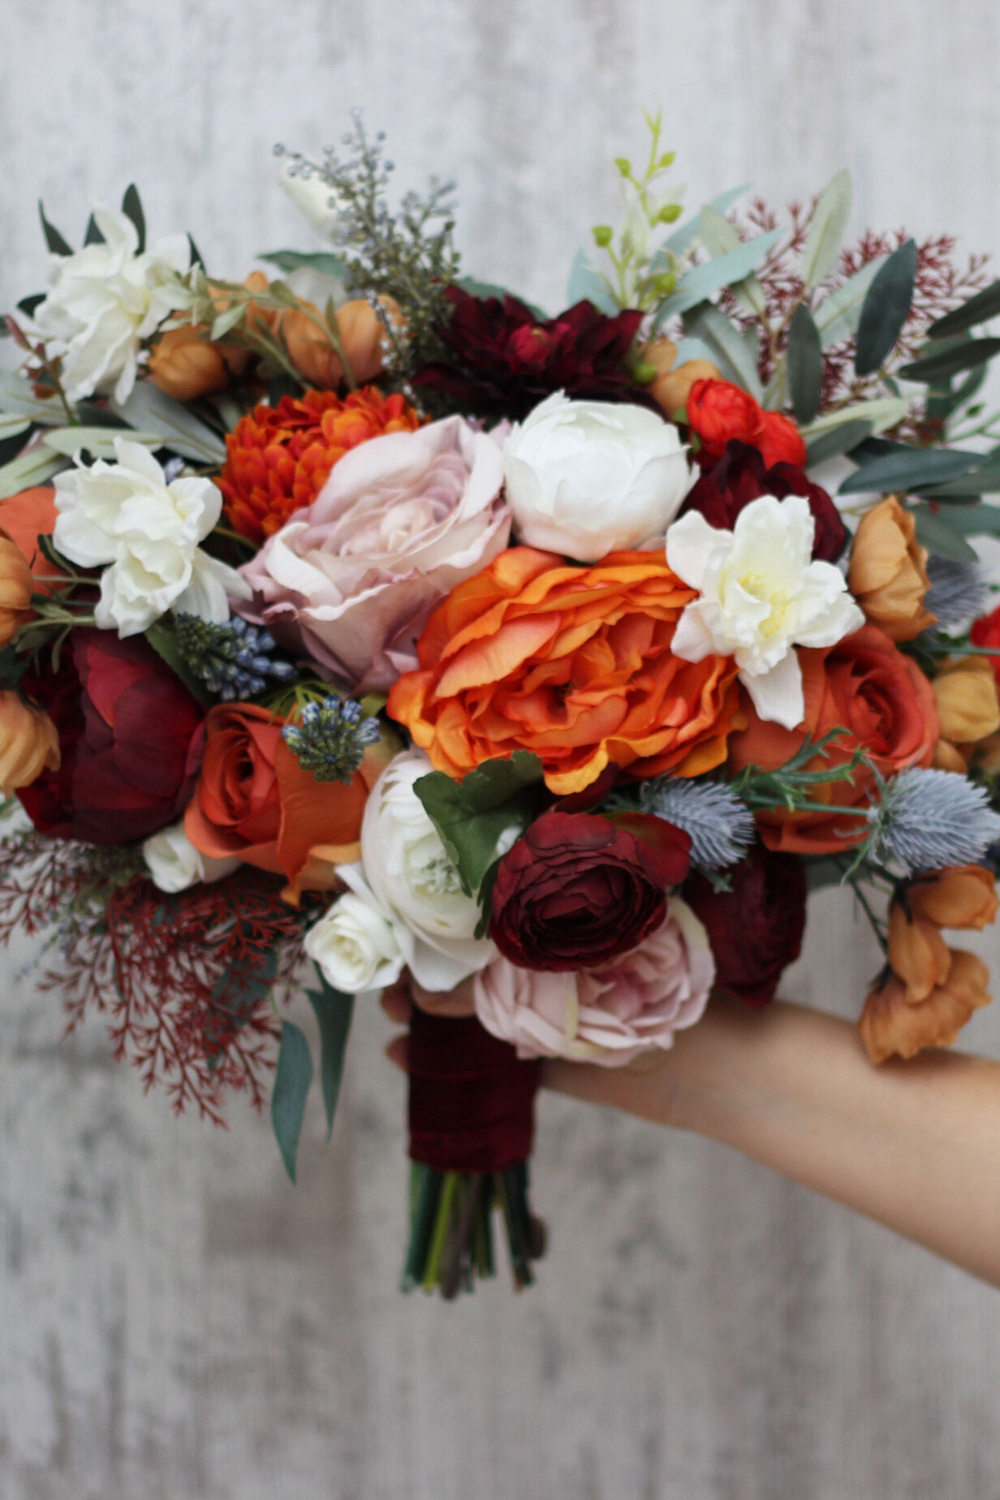 17 Bold And Beautiful Burnt Orange Bridal Bouquets Inspiration And Advice To Plan The Perfect Wedding